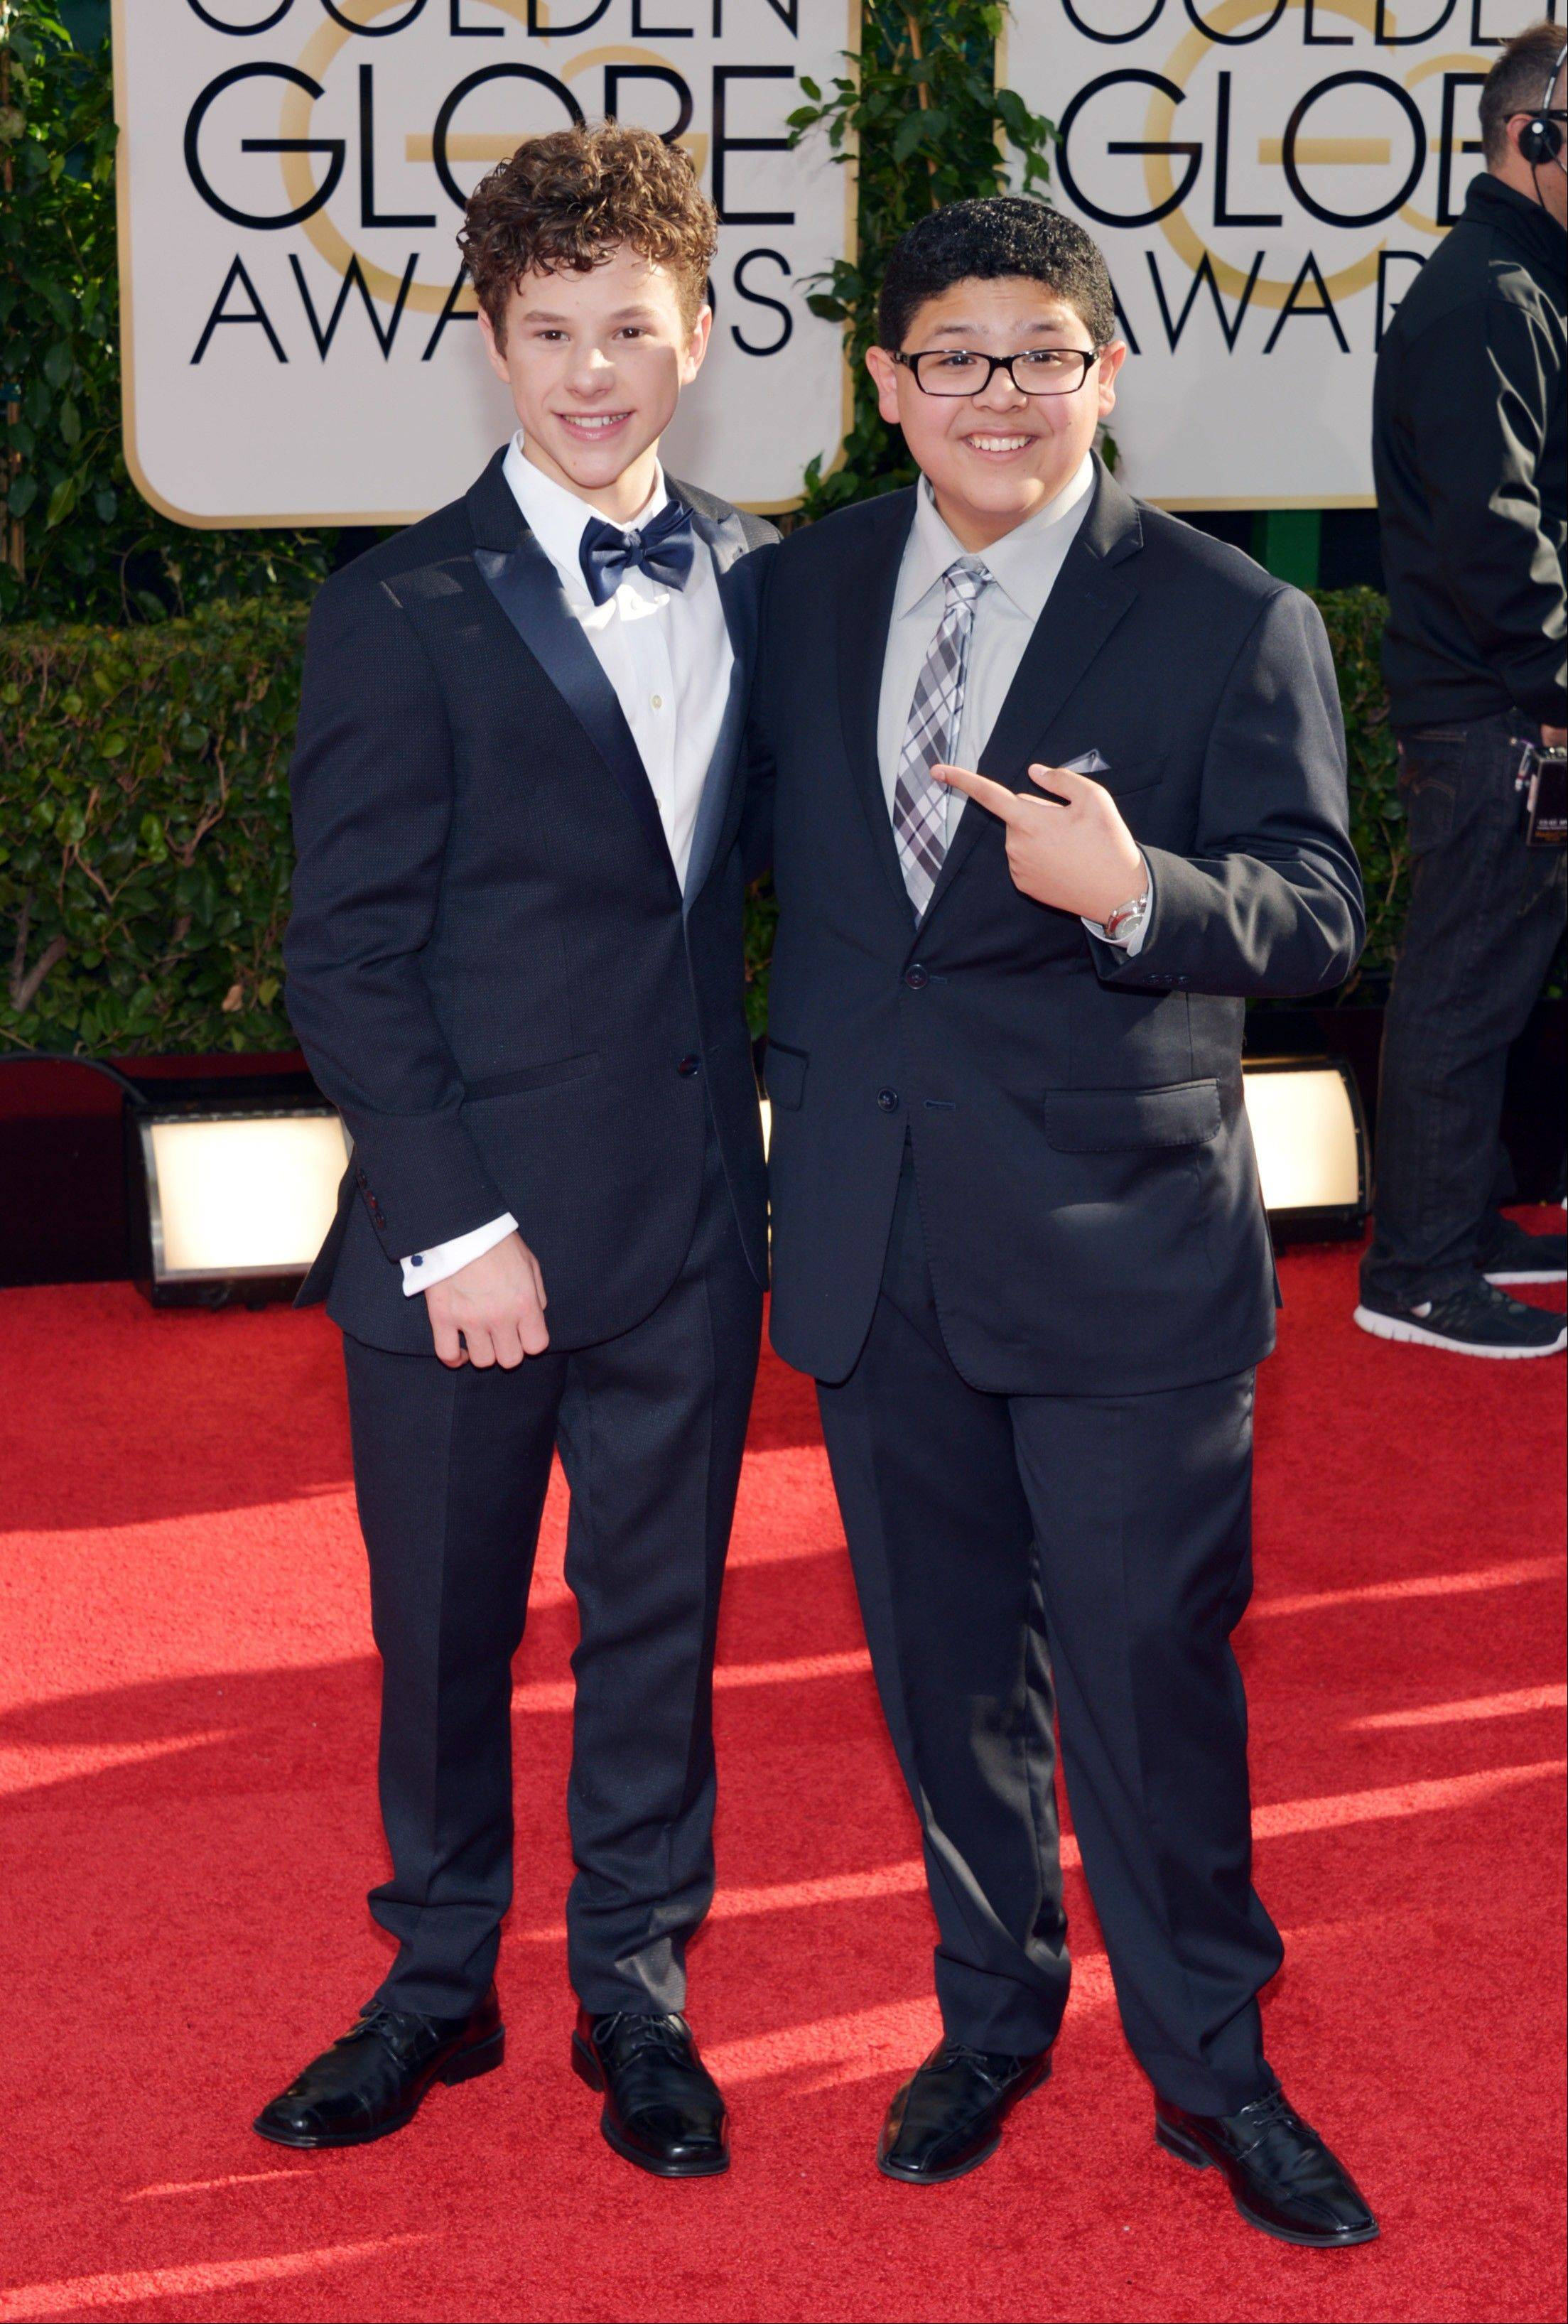 """Modern Family"" stars Nolan Gould, left, and Rico Rodriguez arrive at the 71st annual Golden Globe Awards."